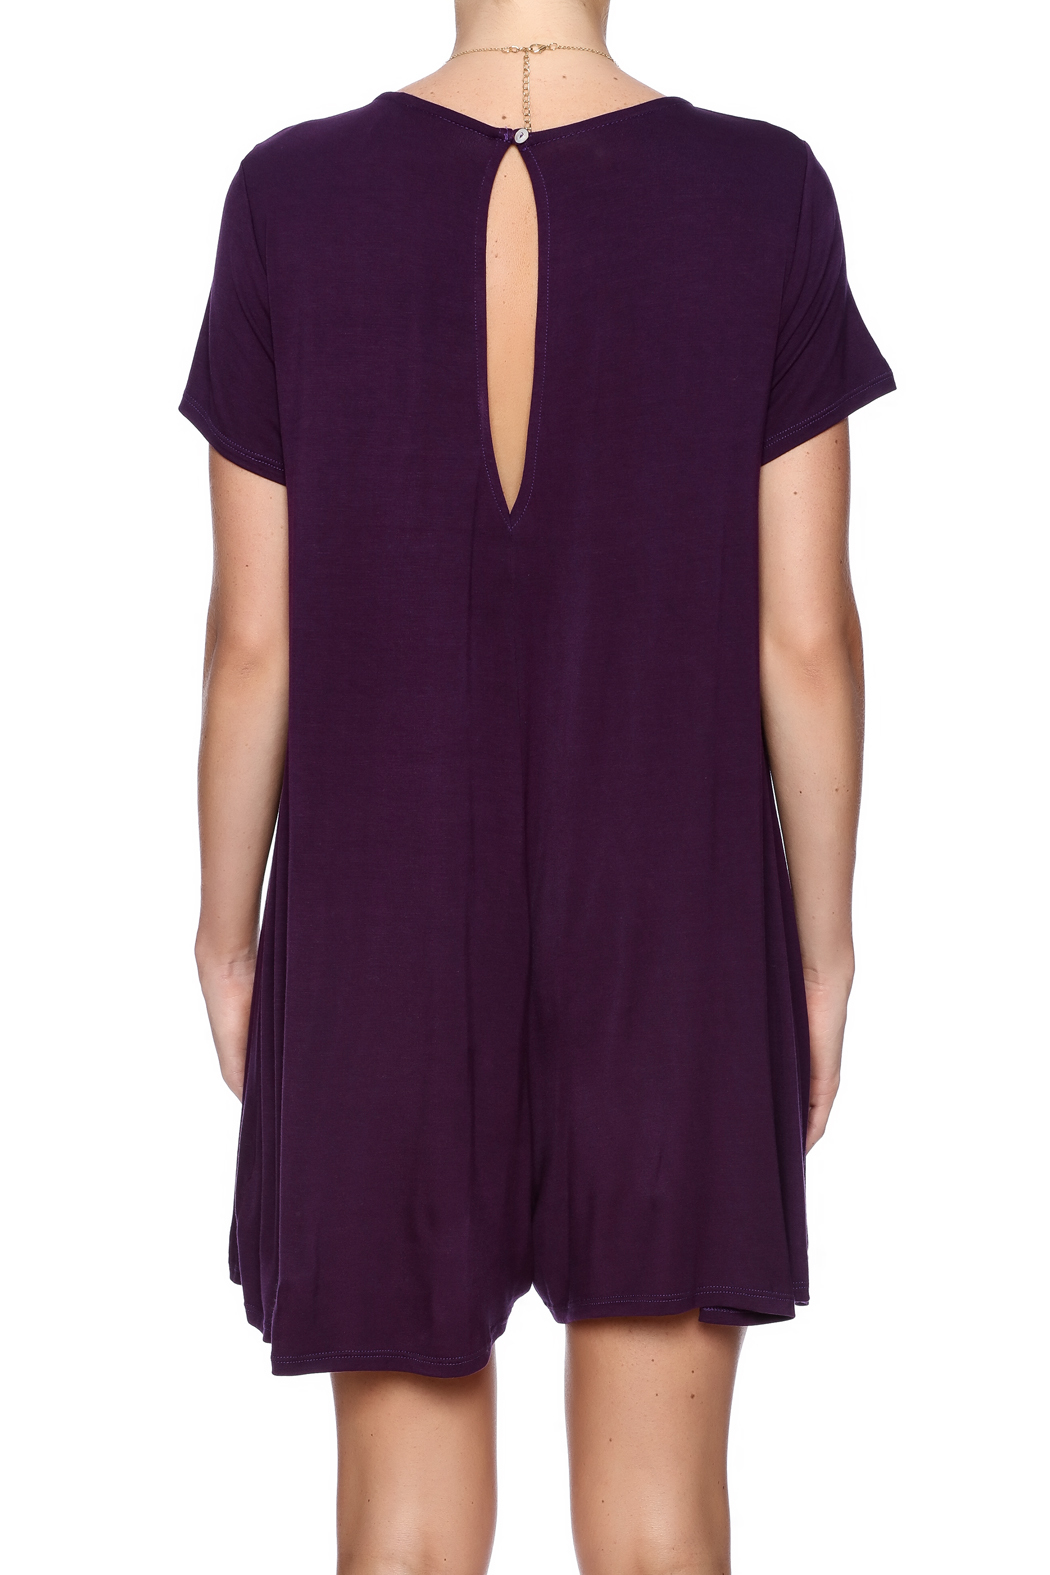 Bella Bella  Geaux Girl Romper - Back Cropped Image